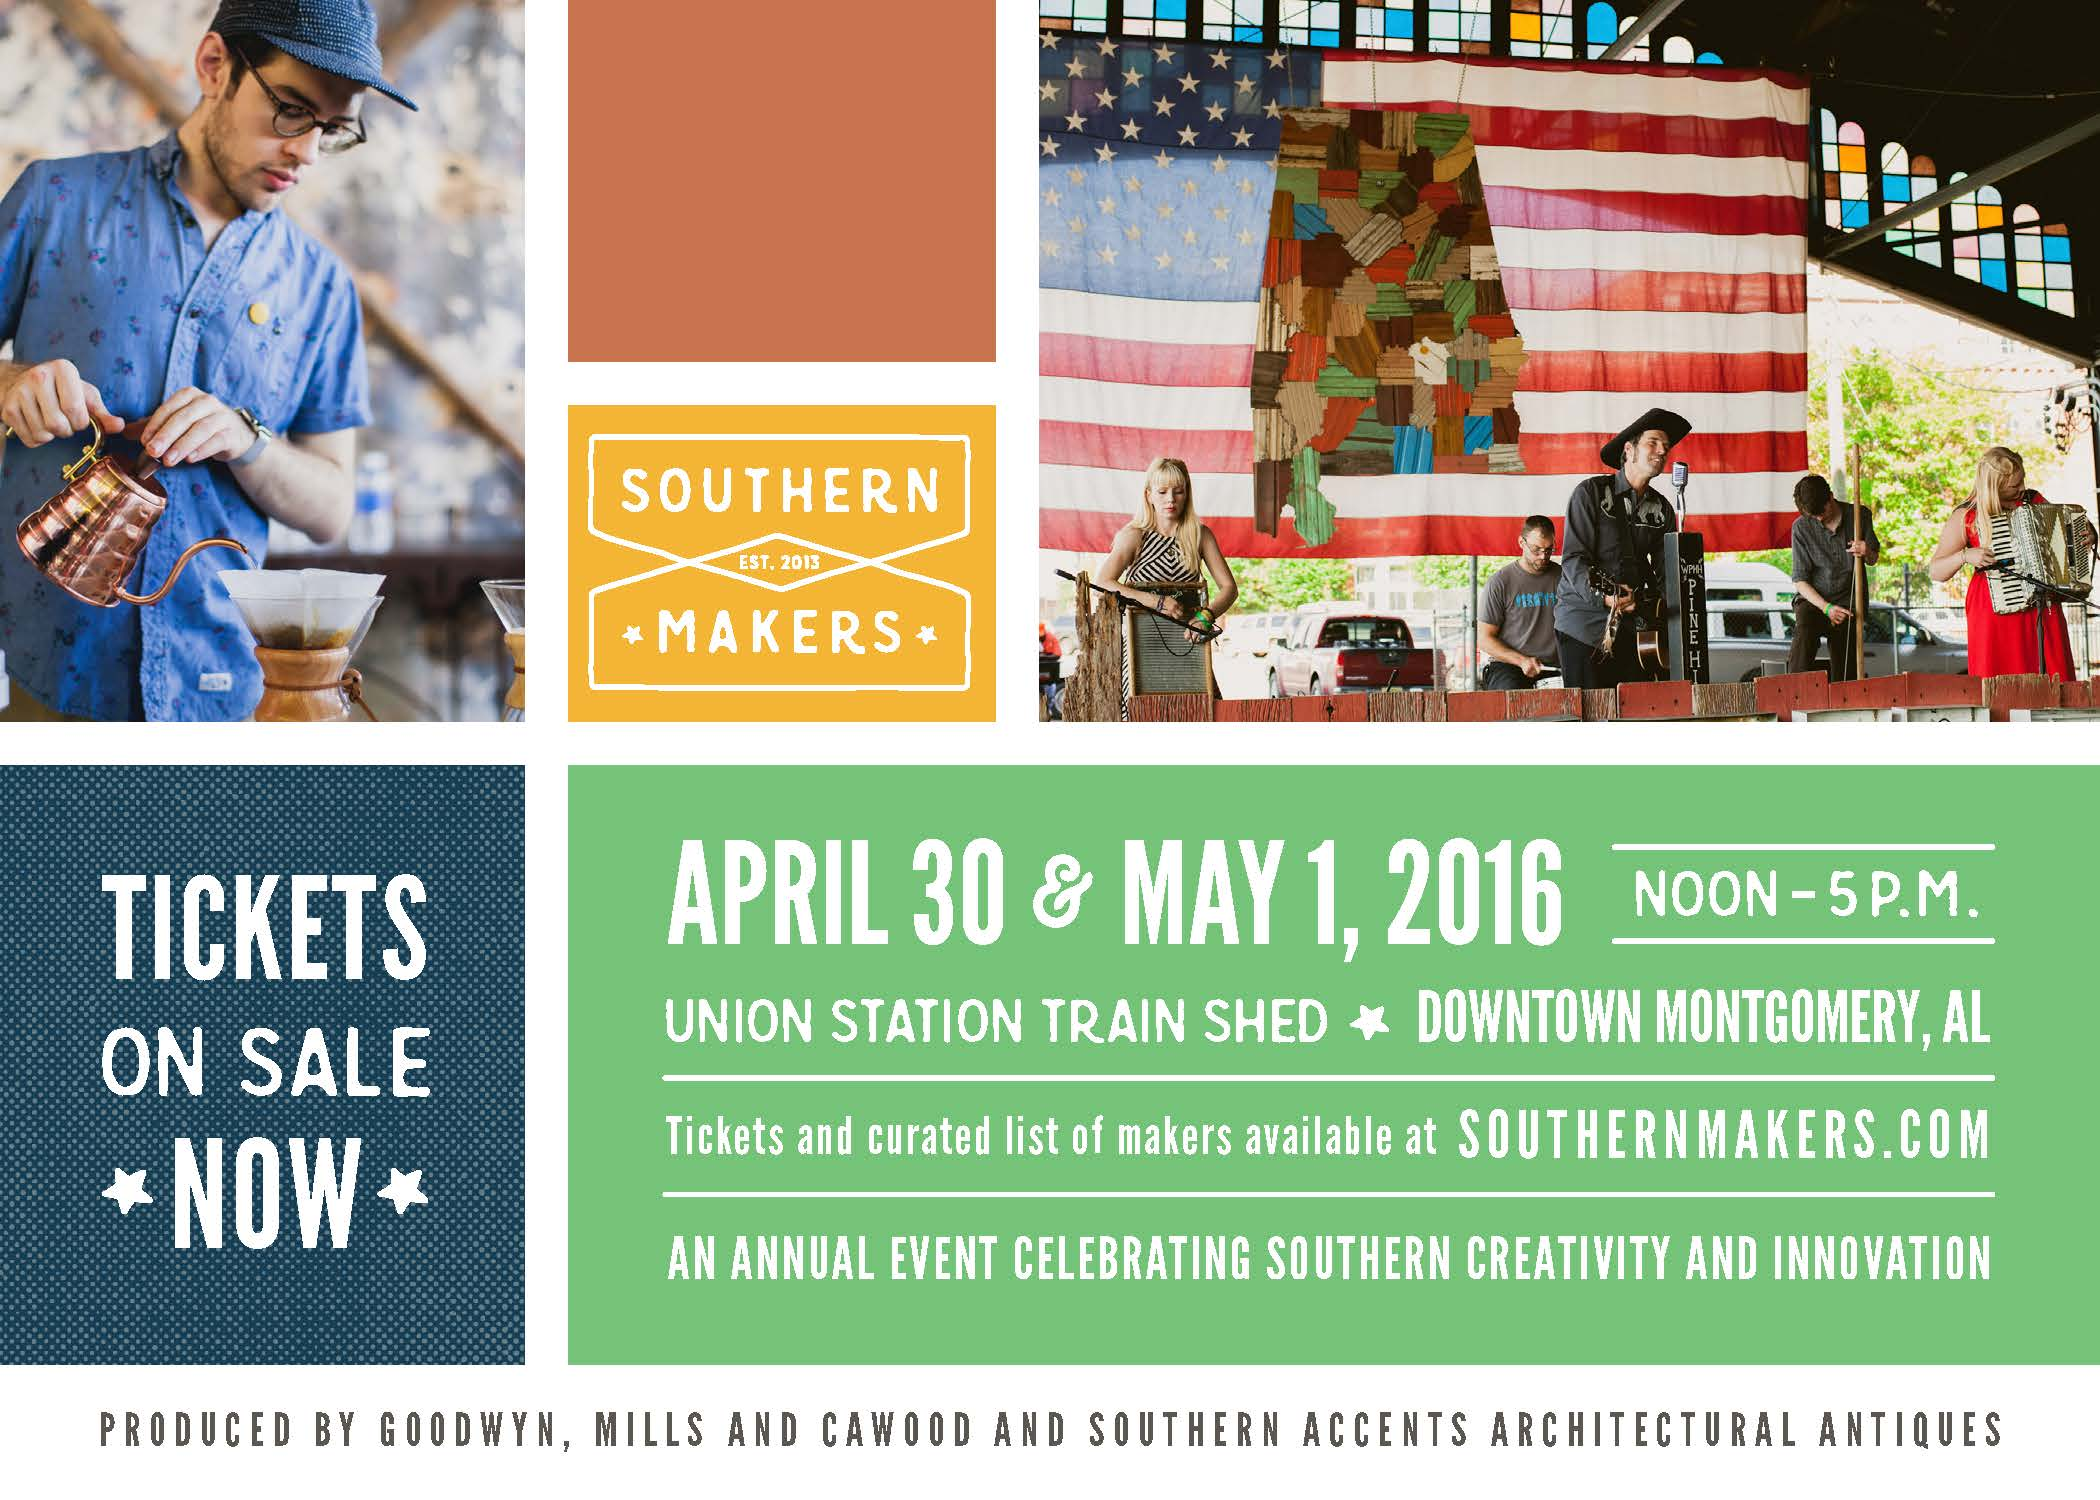 Southern Makers 2016